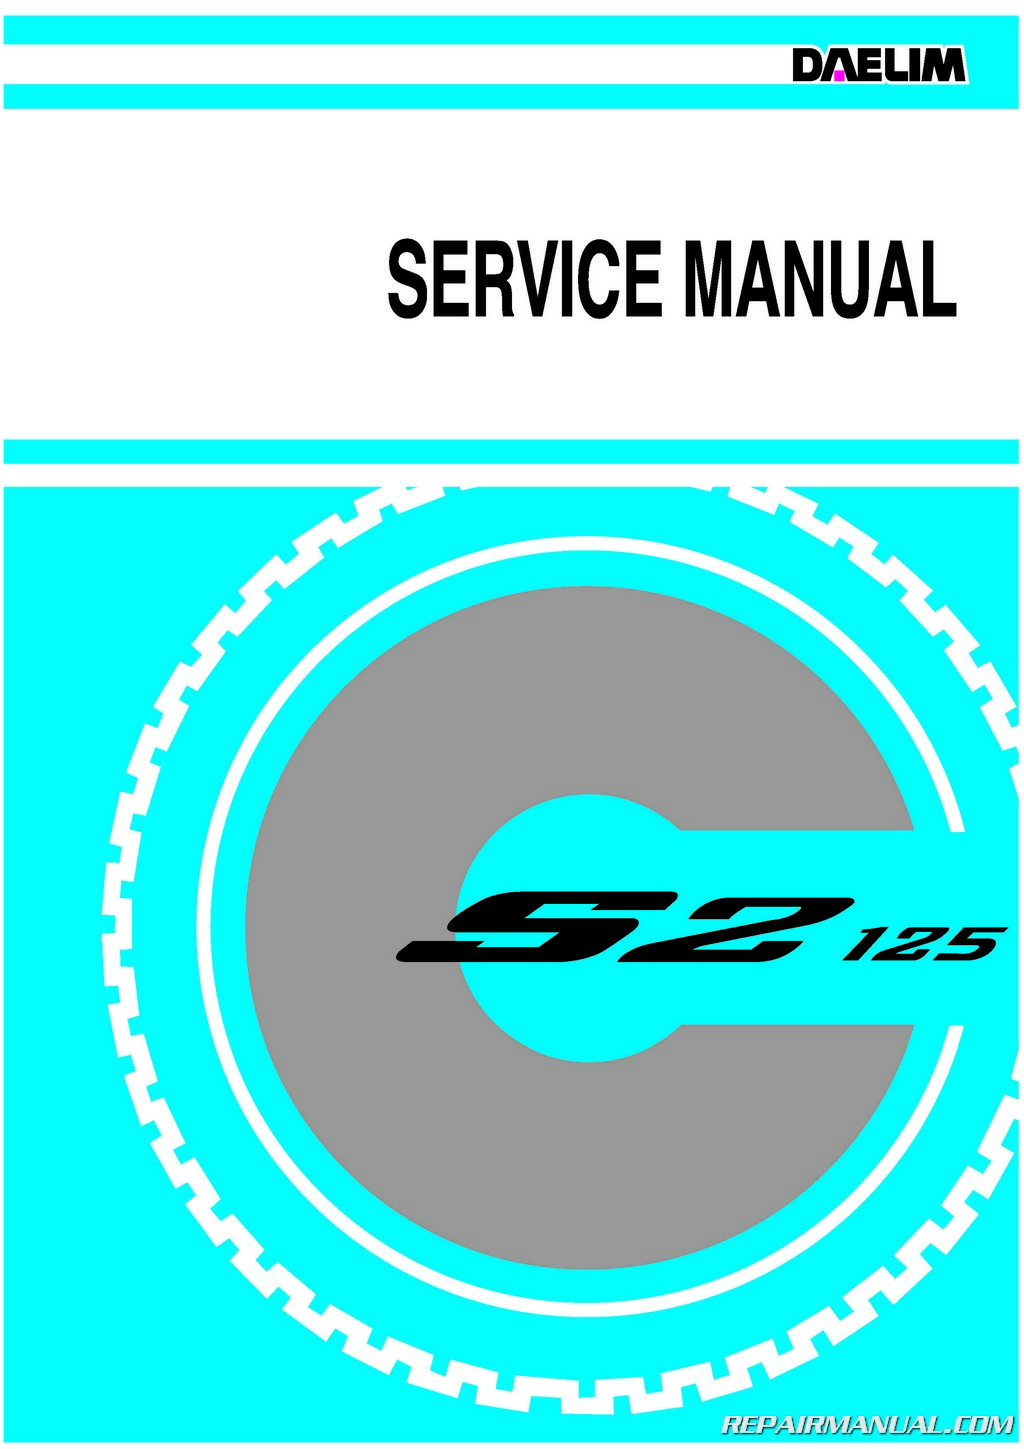 Superb Daelim S2 125 Scooter Service Manual Ebay Wiring Digital Resources Arguphilshebarightsorg